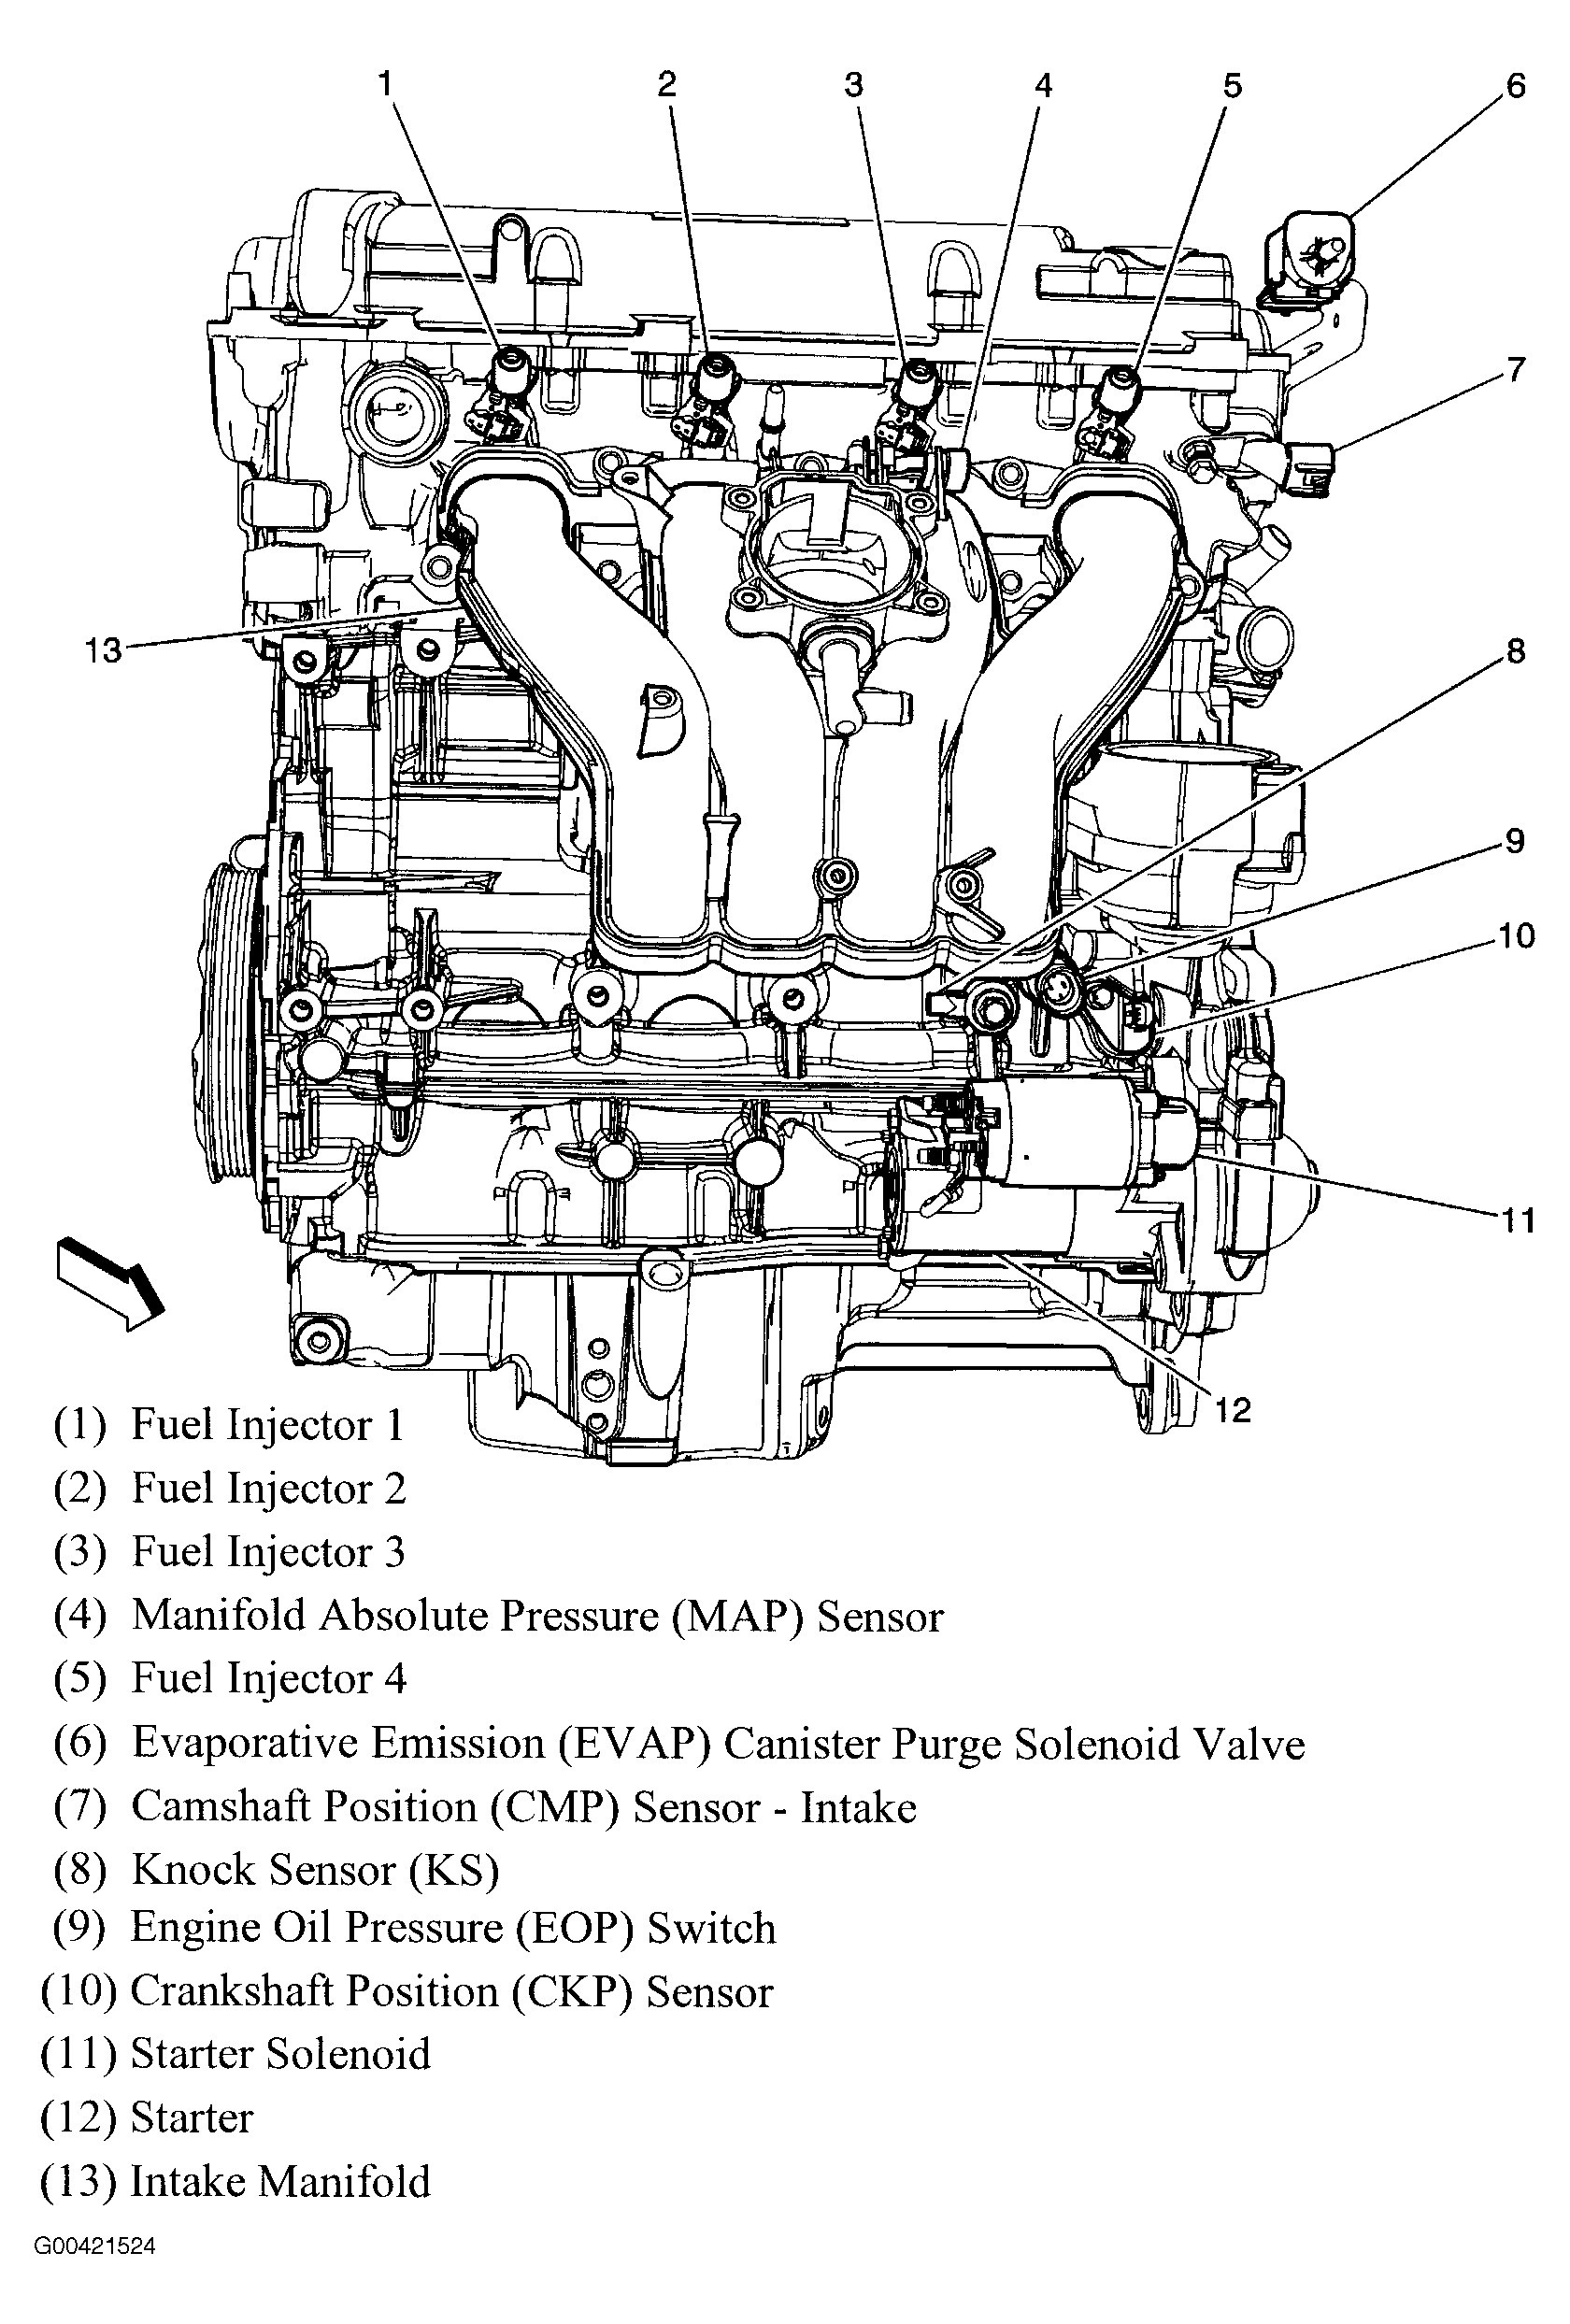 hight resolution of 2011 jeep grand cherokee 3 6 engine diagram wiring diagram operations 2011 jeep grand cherokee engine diagram